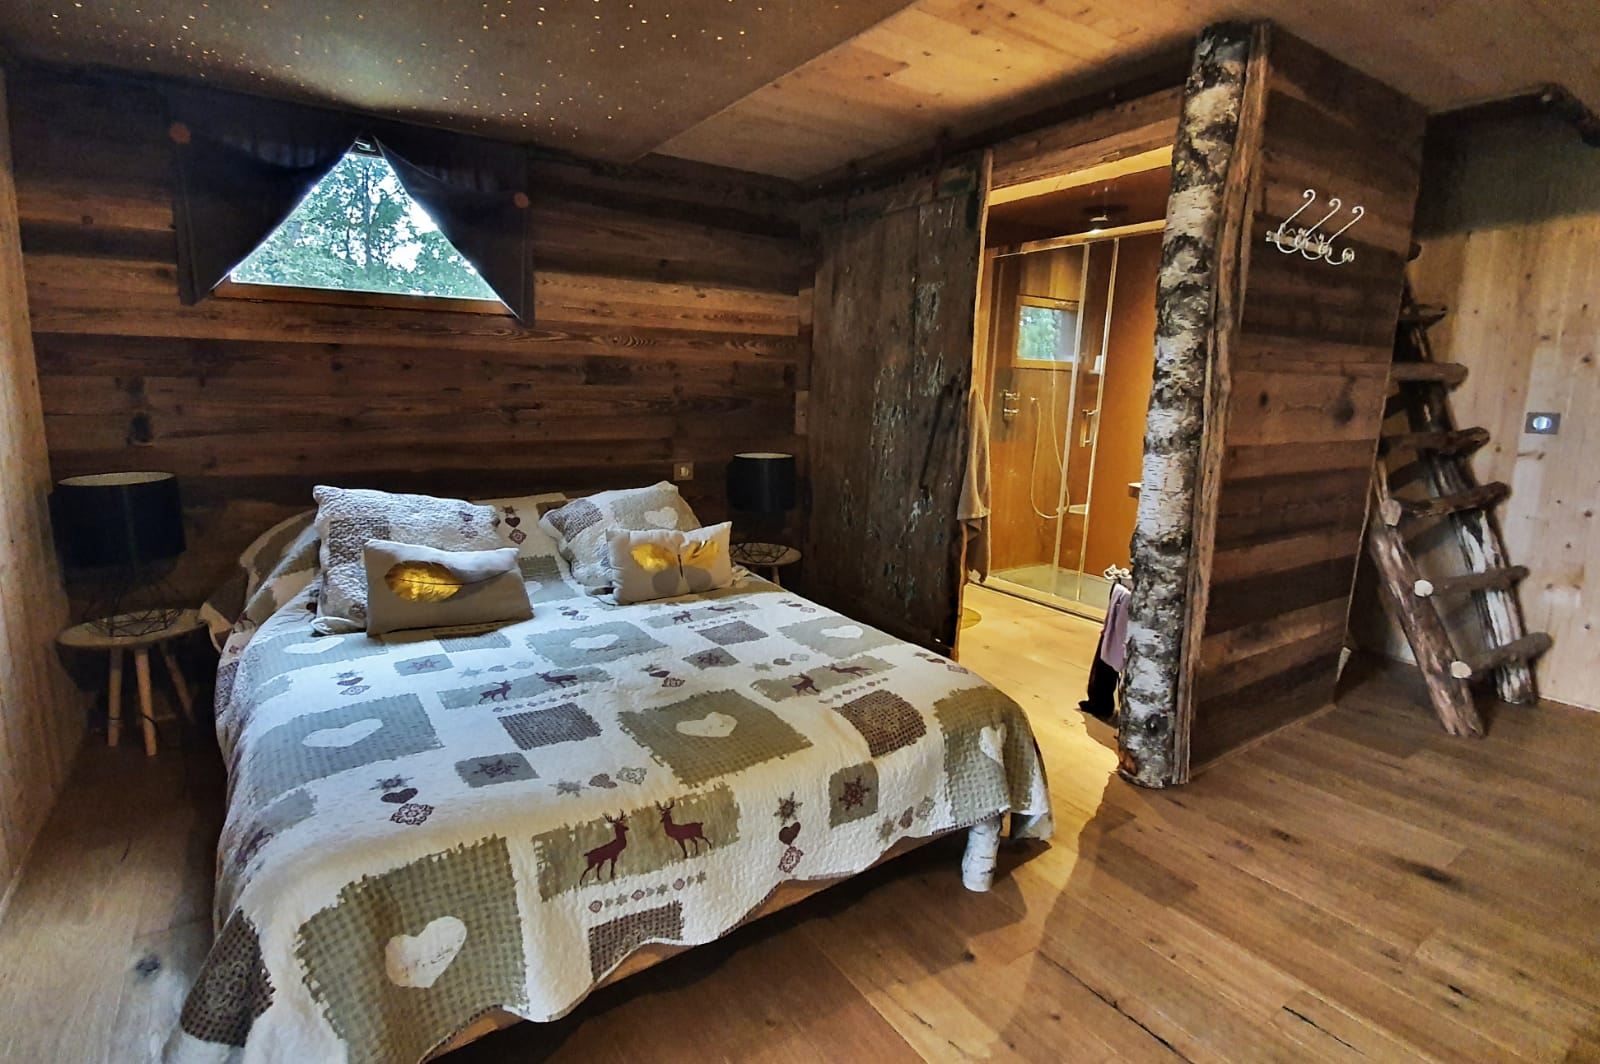 Bed in a wooden tree hut